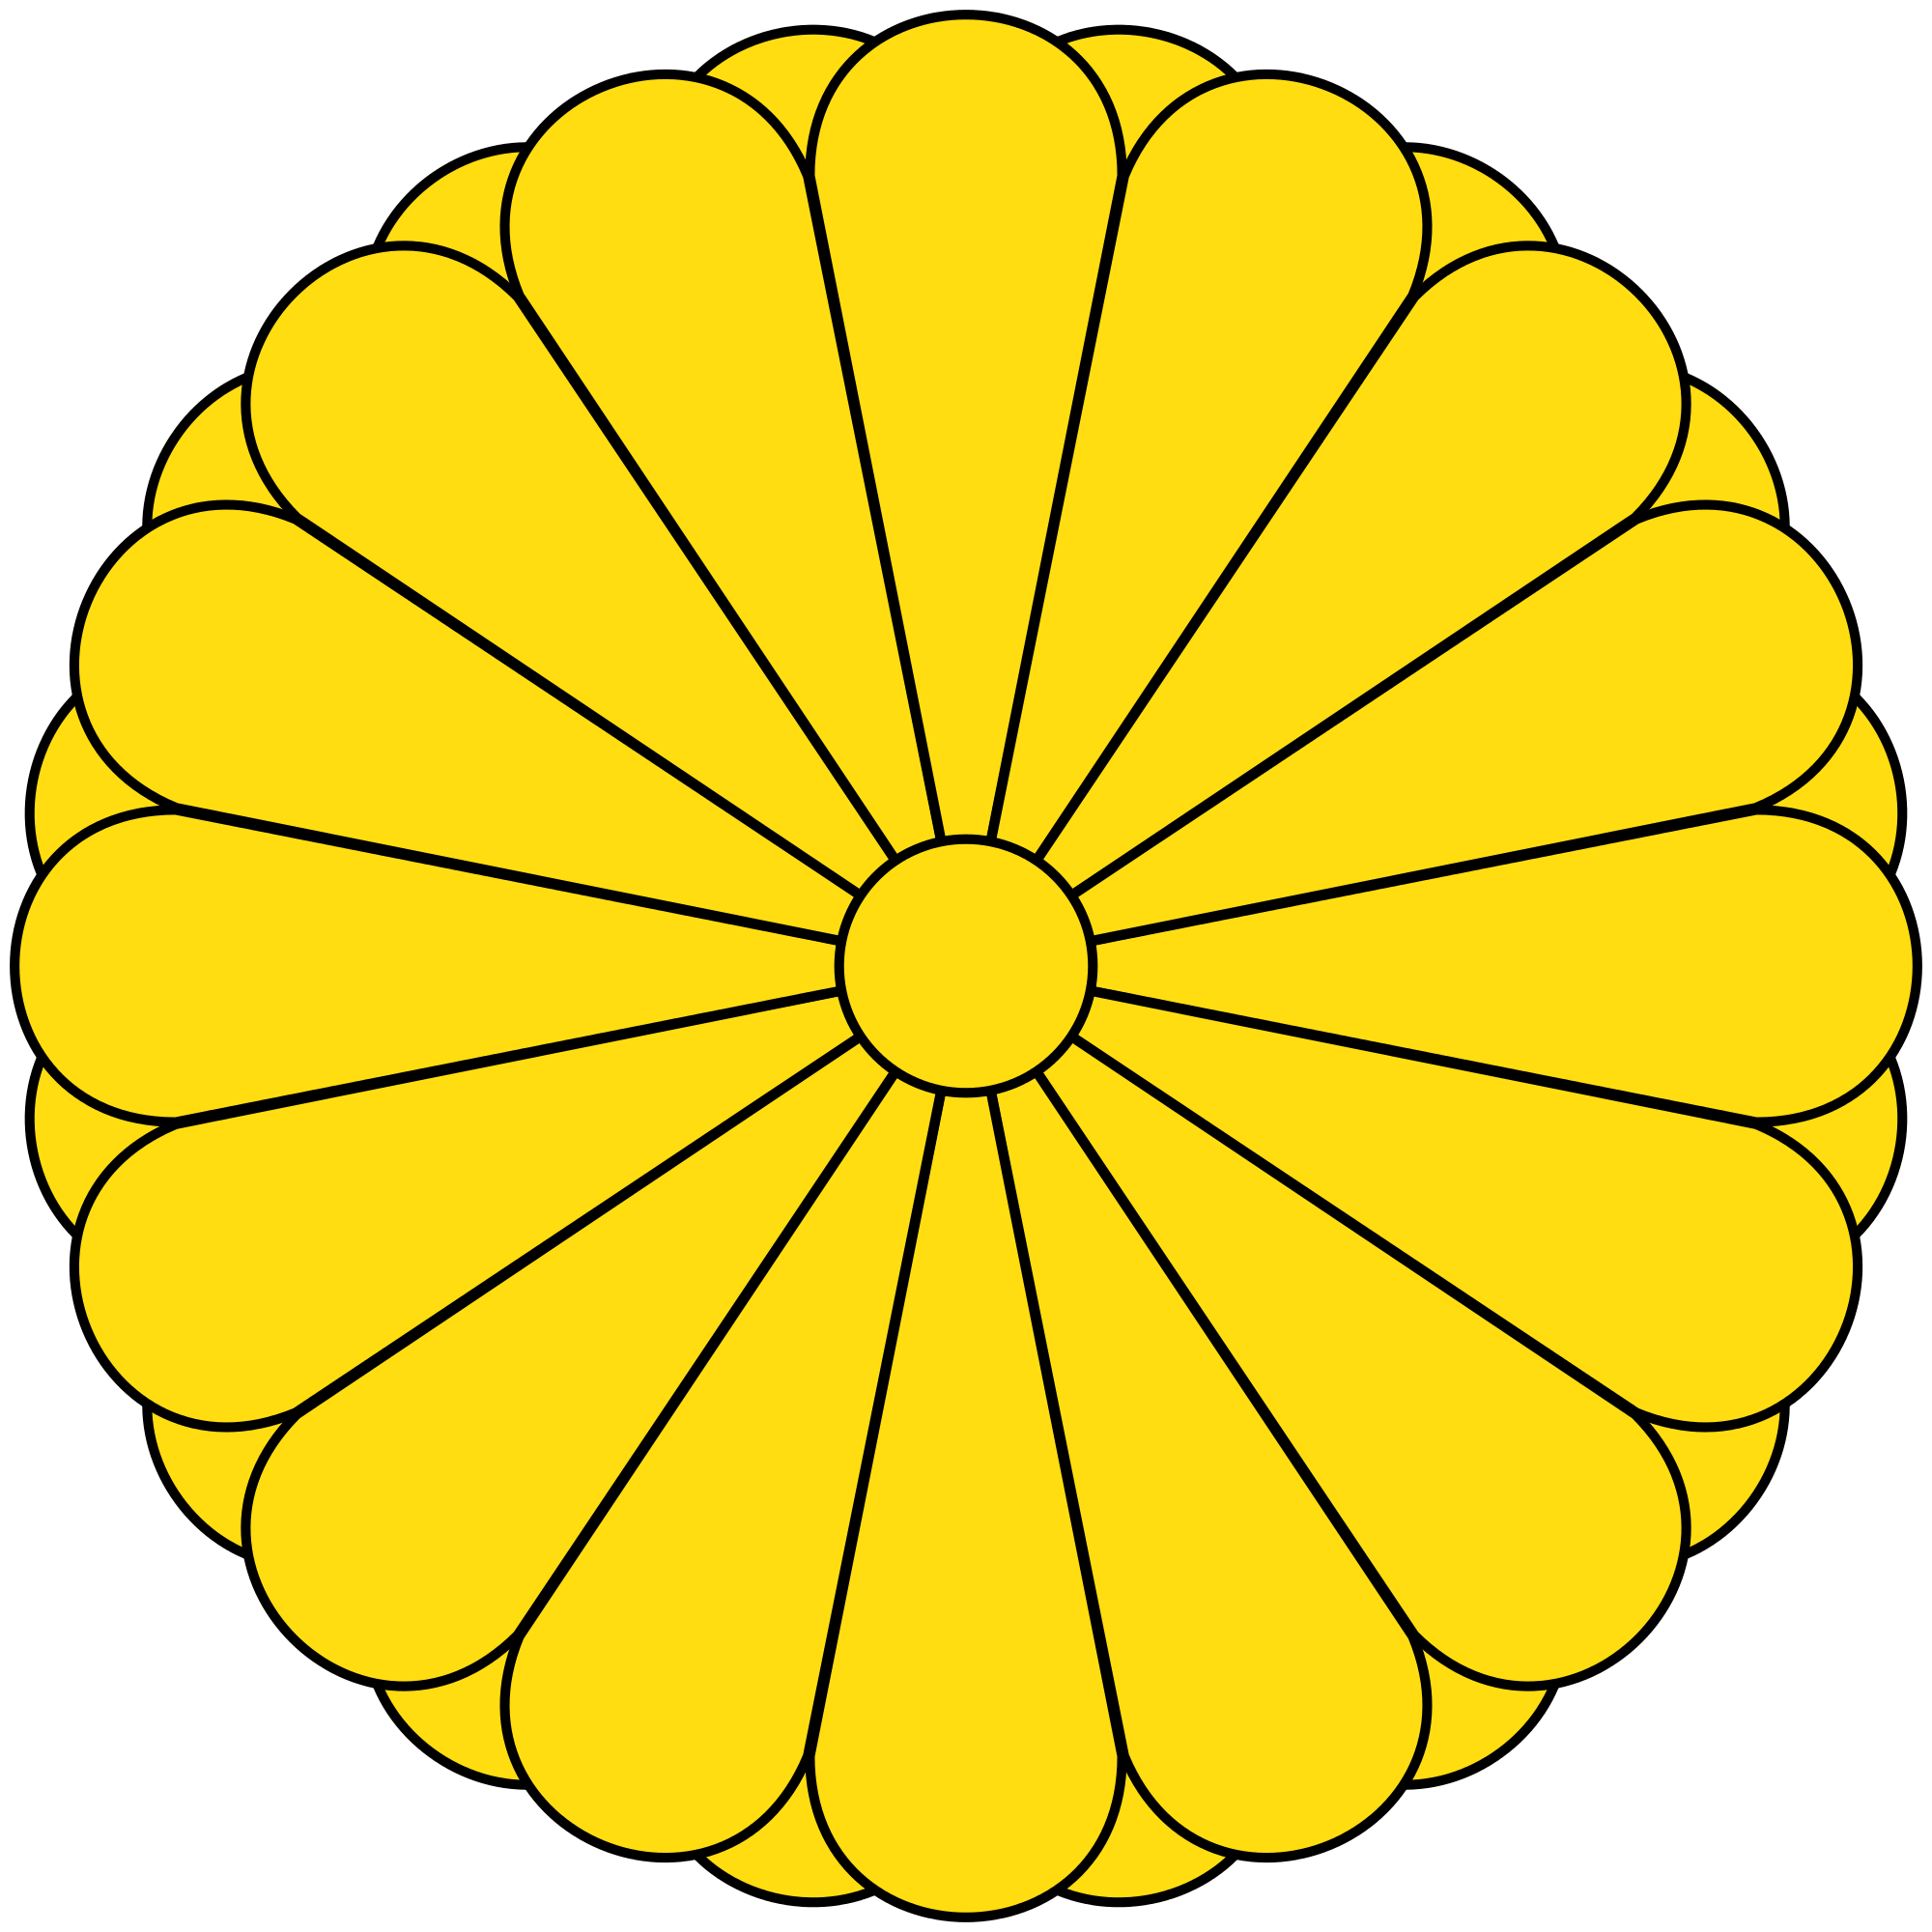 -Imperial_Seal_of_Japan